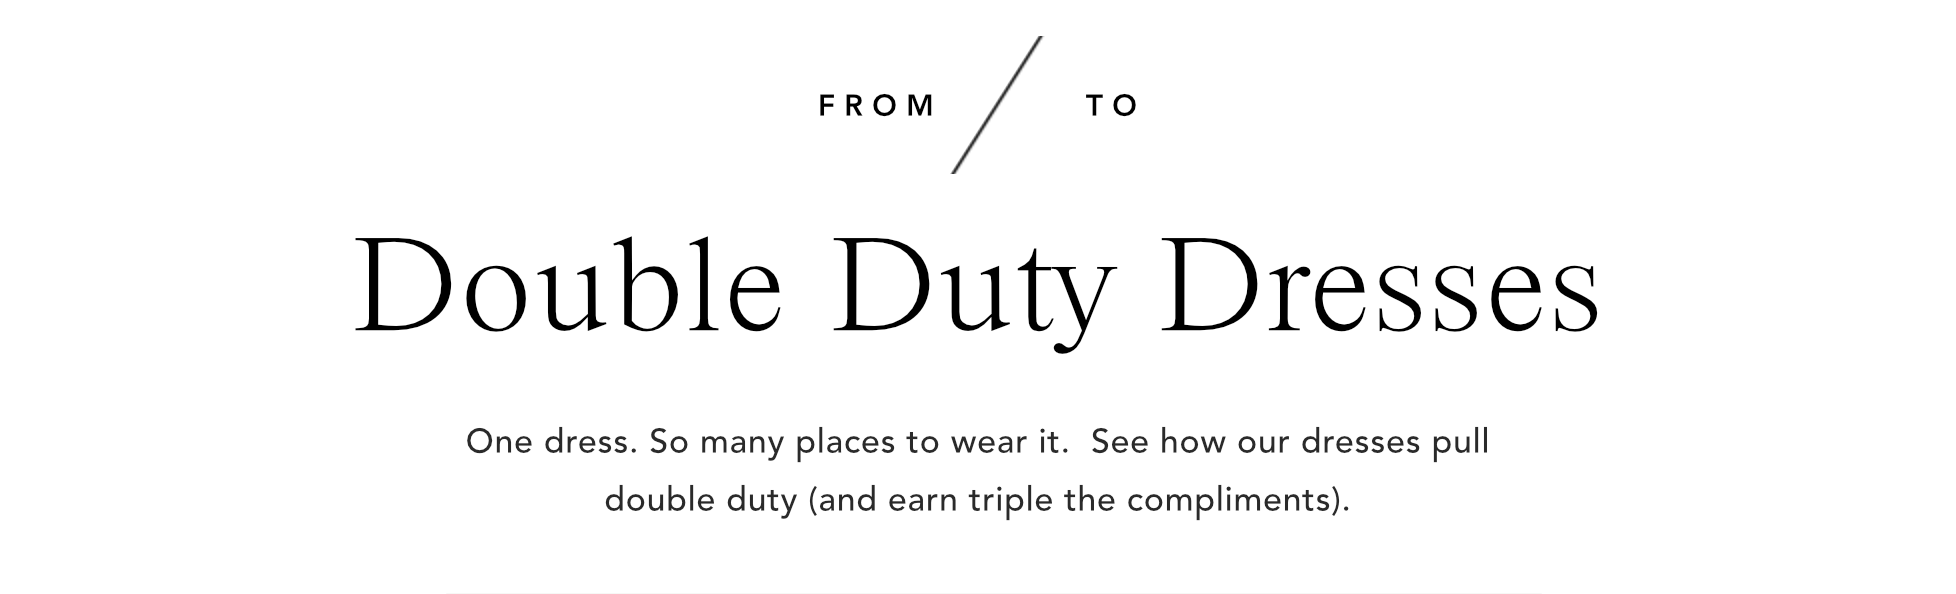 Double duty dresses ann taylor pooptronica Images